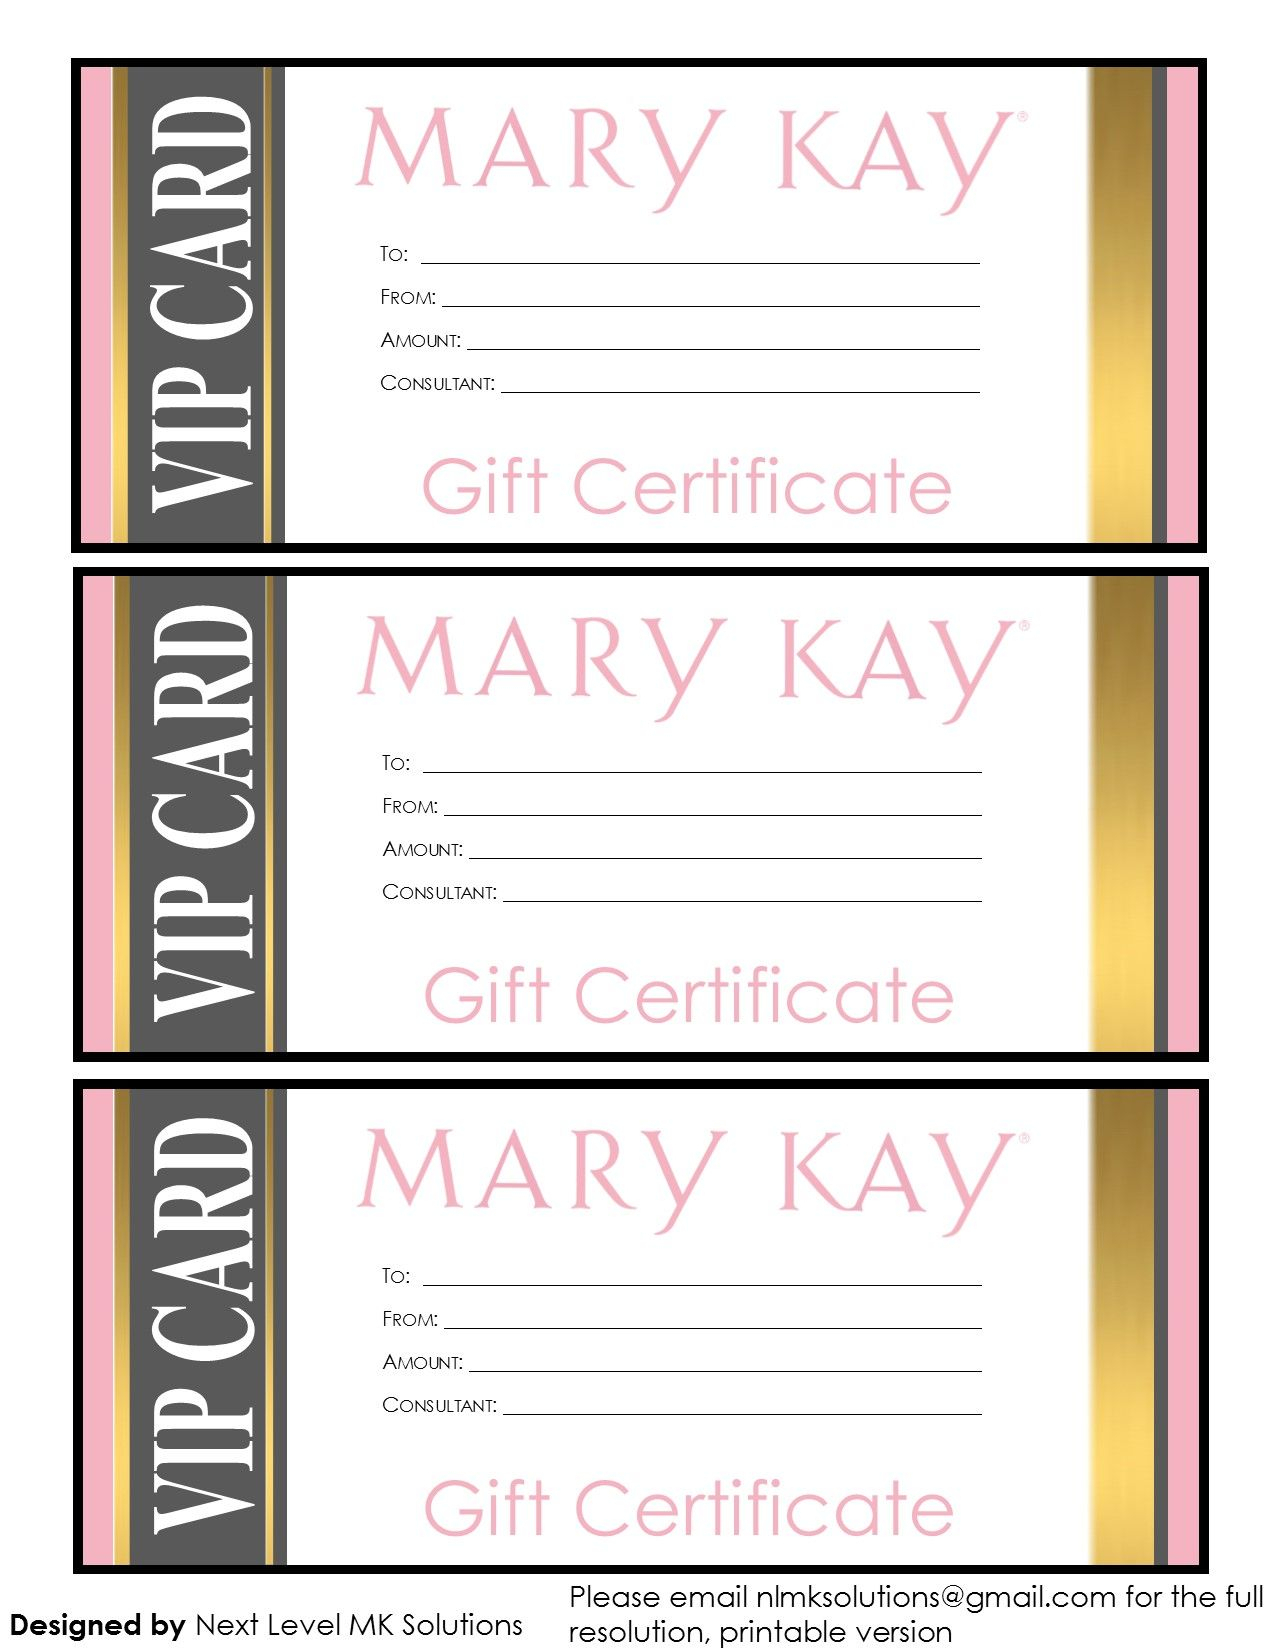 Mary Kay Gift Certificates - Please Email For The Full Pdf Inside Mary Kay Gift Certificate Template